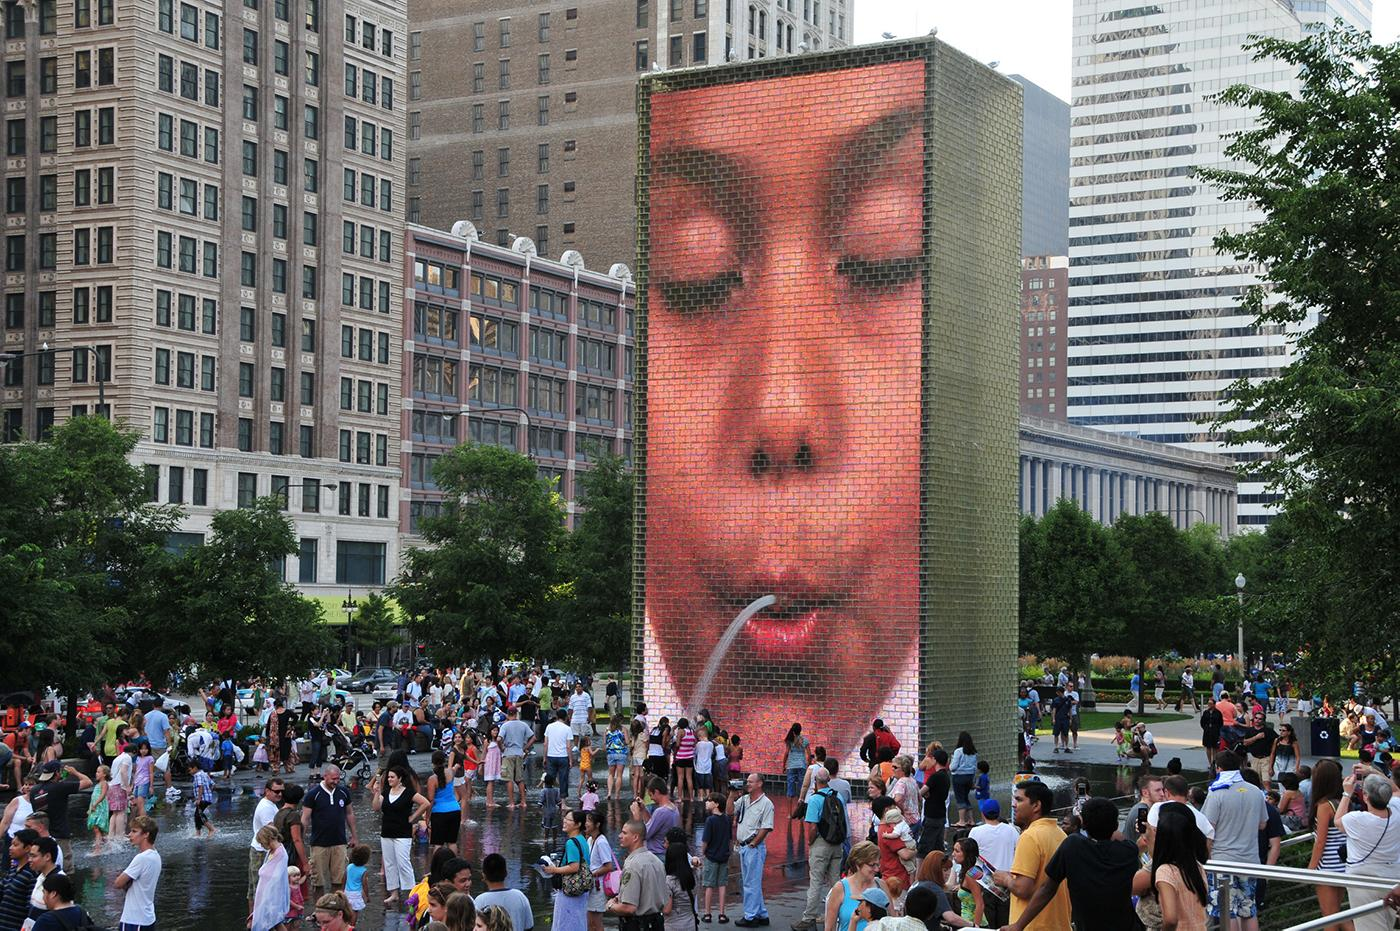 Crown Fountain in Millennium Park in Chicago.Photo: Serge Melki/Flickr